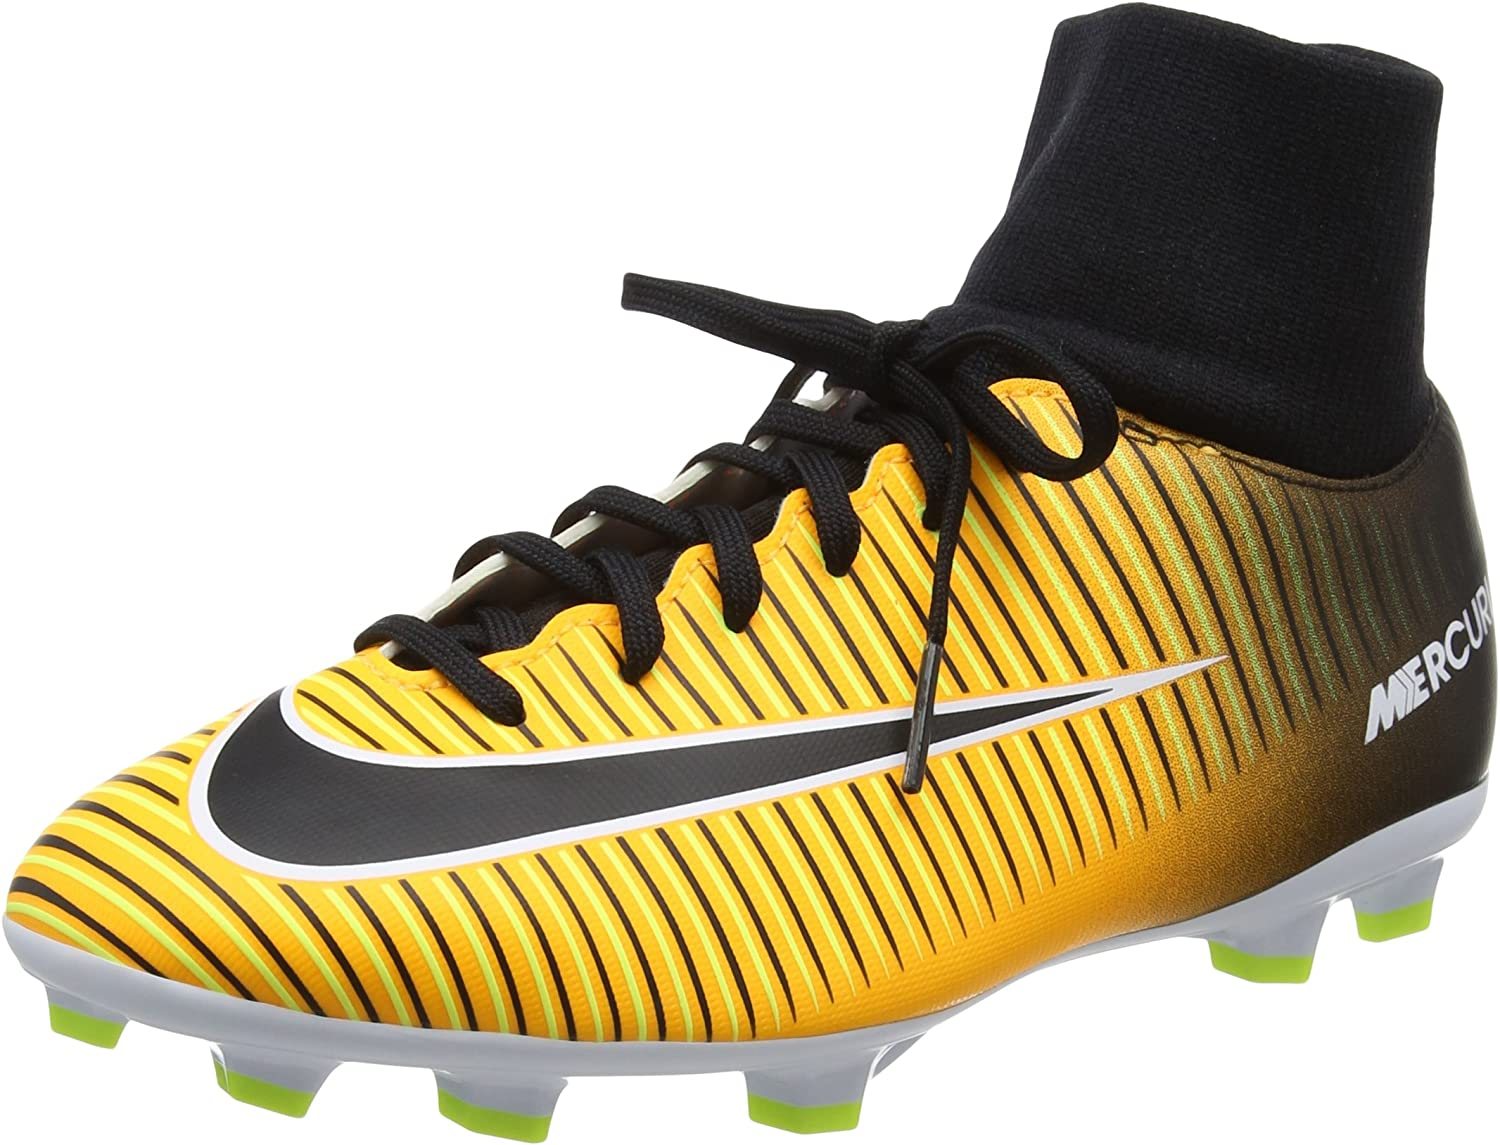 Pack para poner micrófono Margaret Mitchell  Nike Boys' Mercurial Victory Vi Dynamic Fit Fg Football Boots:  Amazon.co.uk: Shoes & Bags